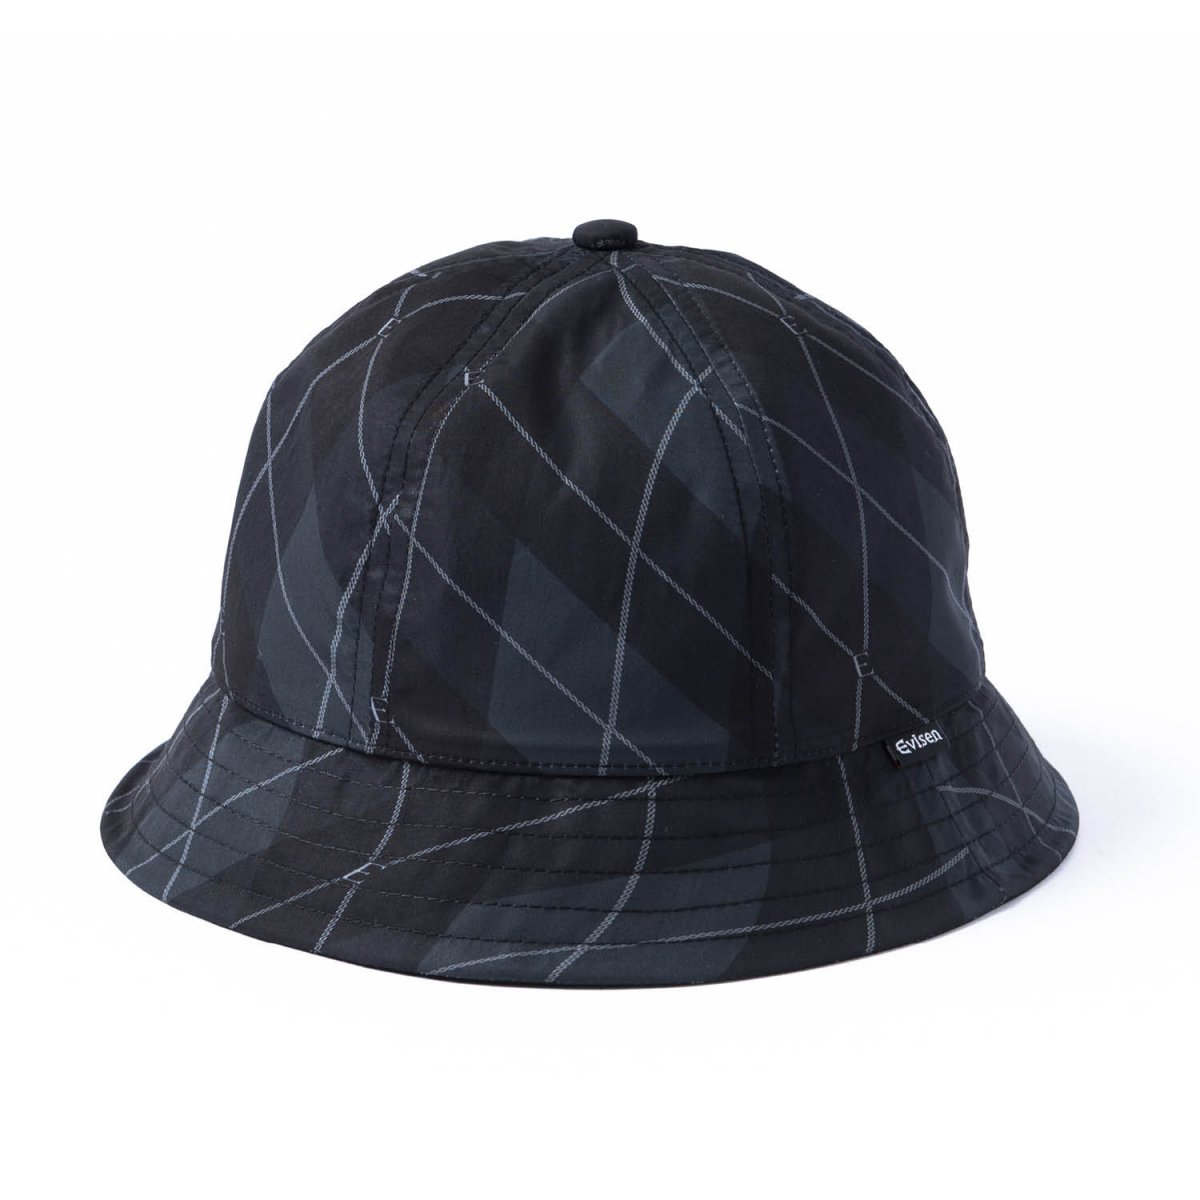 <img class='new_mark_img1' src='https://img.shop-pro.jp/img/new/icons8.gif' style='border:none;display:inline;margin:0px;padding:0px;width:auto;' />【EVISEN】Bent Argyle Hat (Black)                           </a>             <span class=